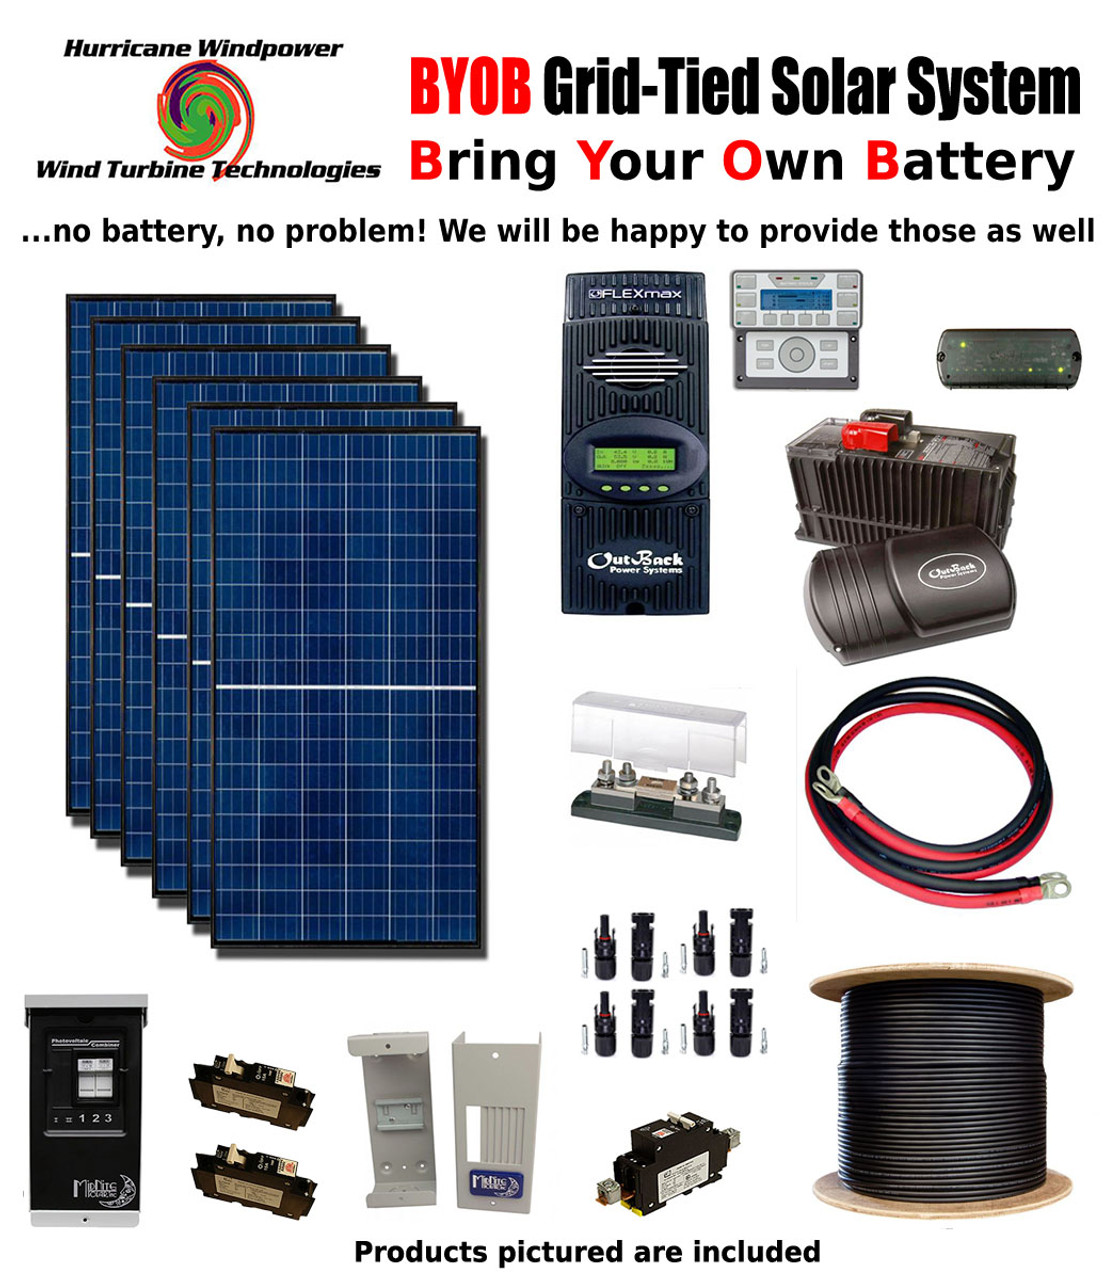 BYOB Grid-Tied 1.7KW 24V Solar Panel Kit Tiny House Cabin PV System Outback FM80